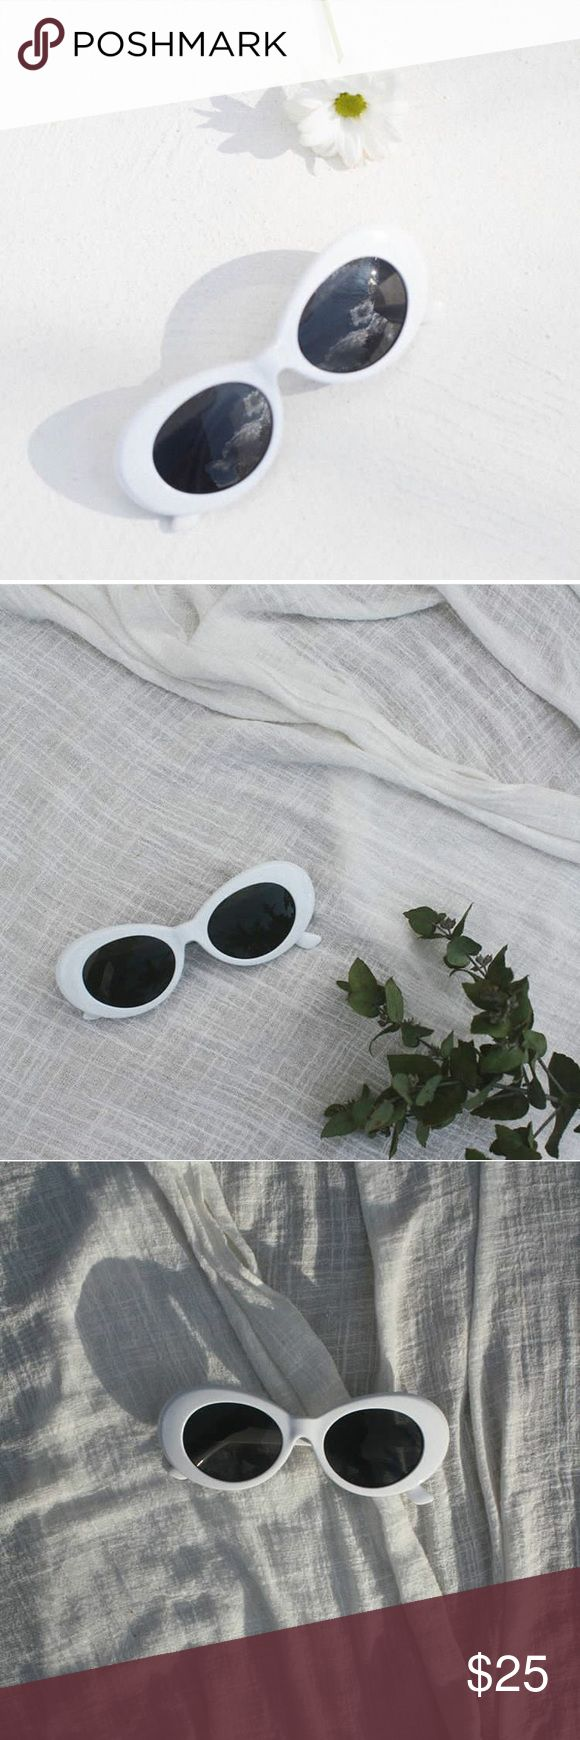 White cat eye framed boho trendy summer sunglasses Brand new // not reformed brand //  sunglasses feature polarized lenses and 99% UVA/UVB sun protection //also sold on our website Breathofyouth.com Reformation Accessories Sunglasses